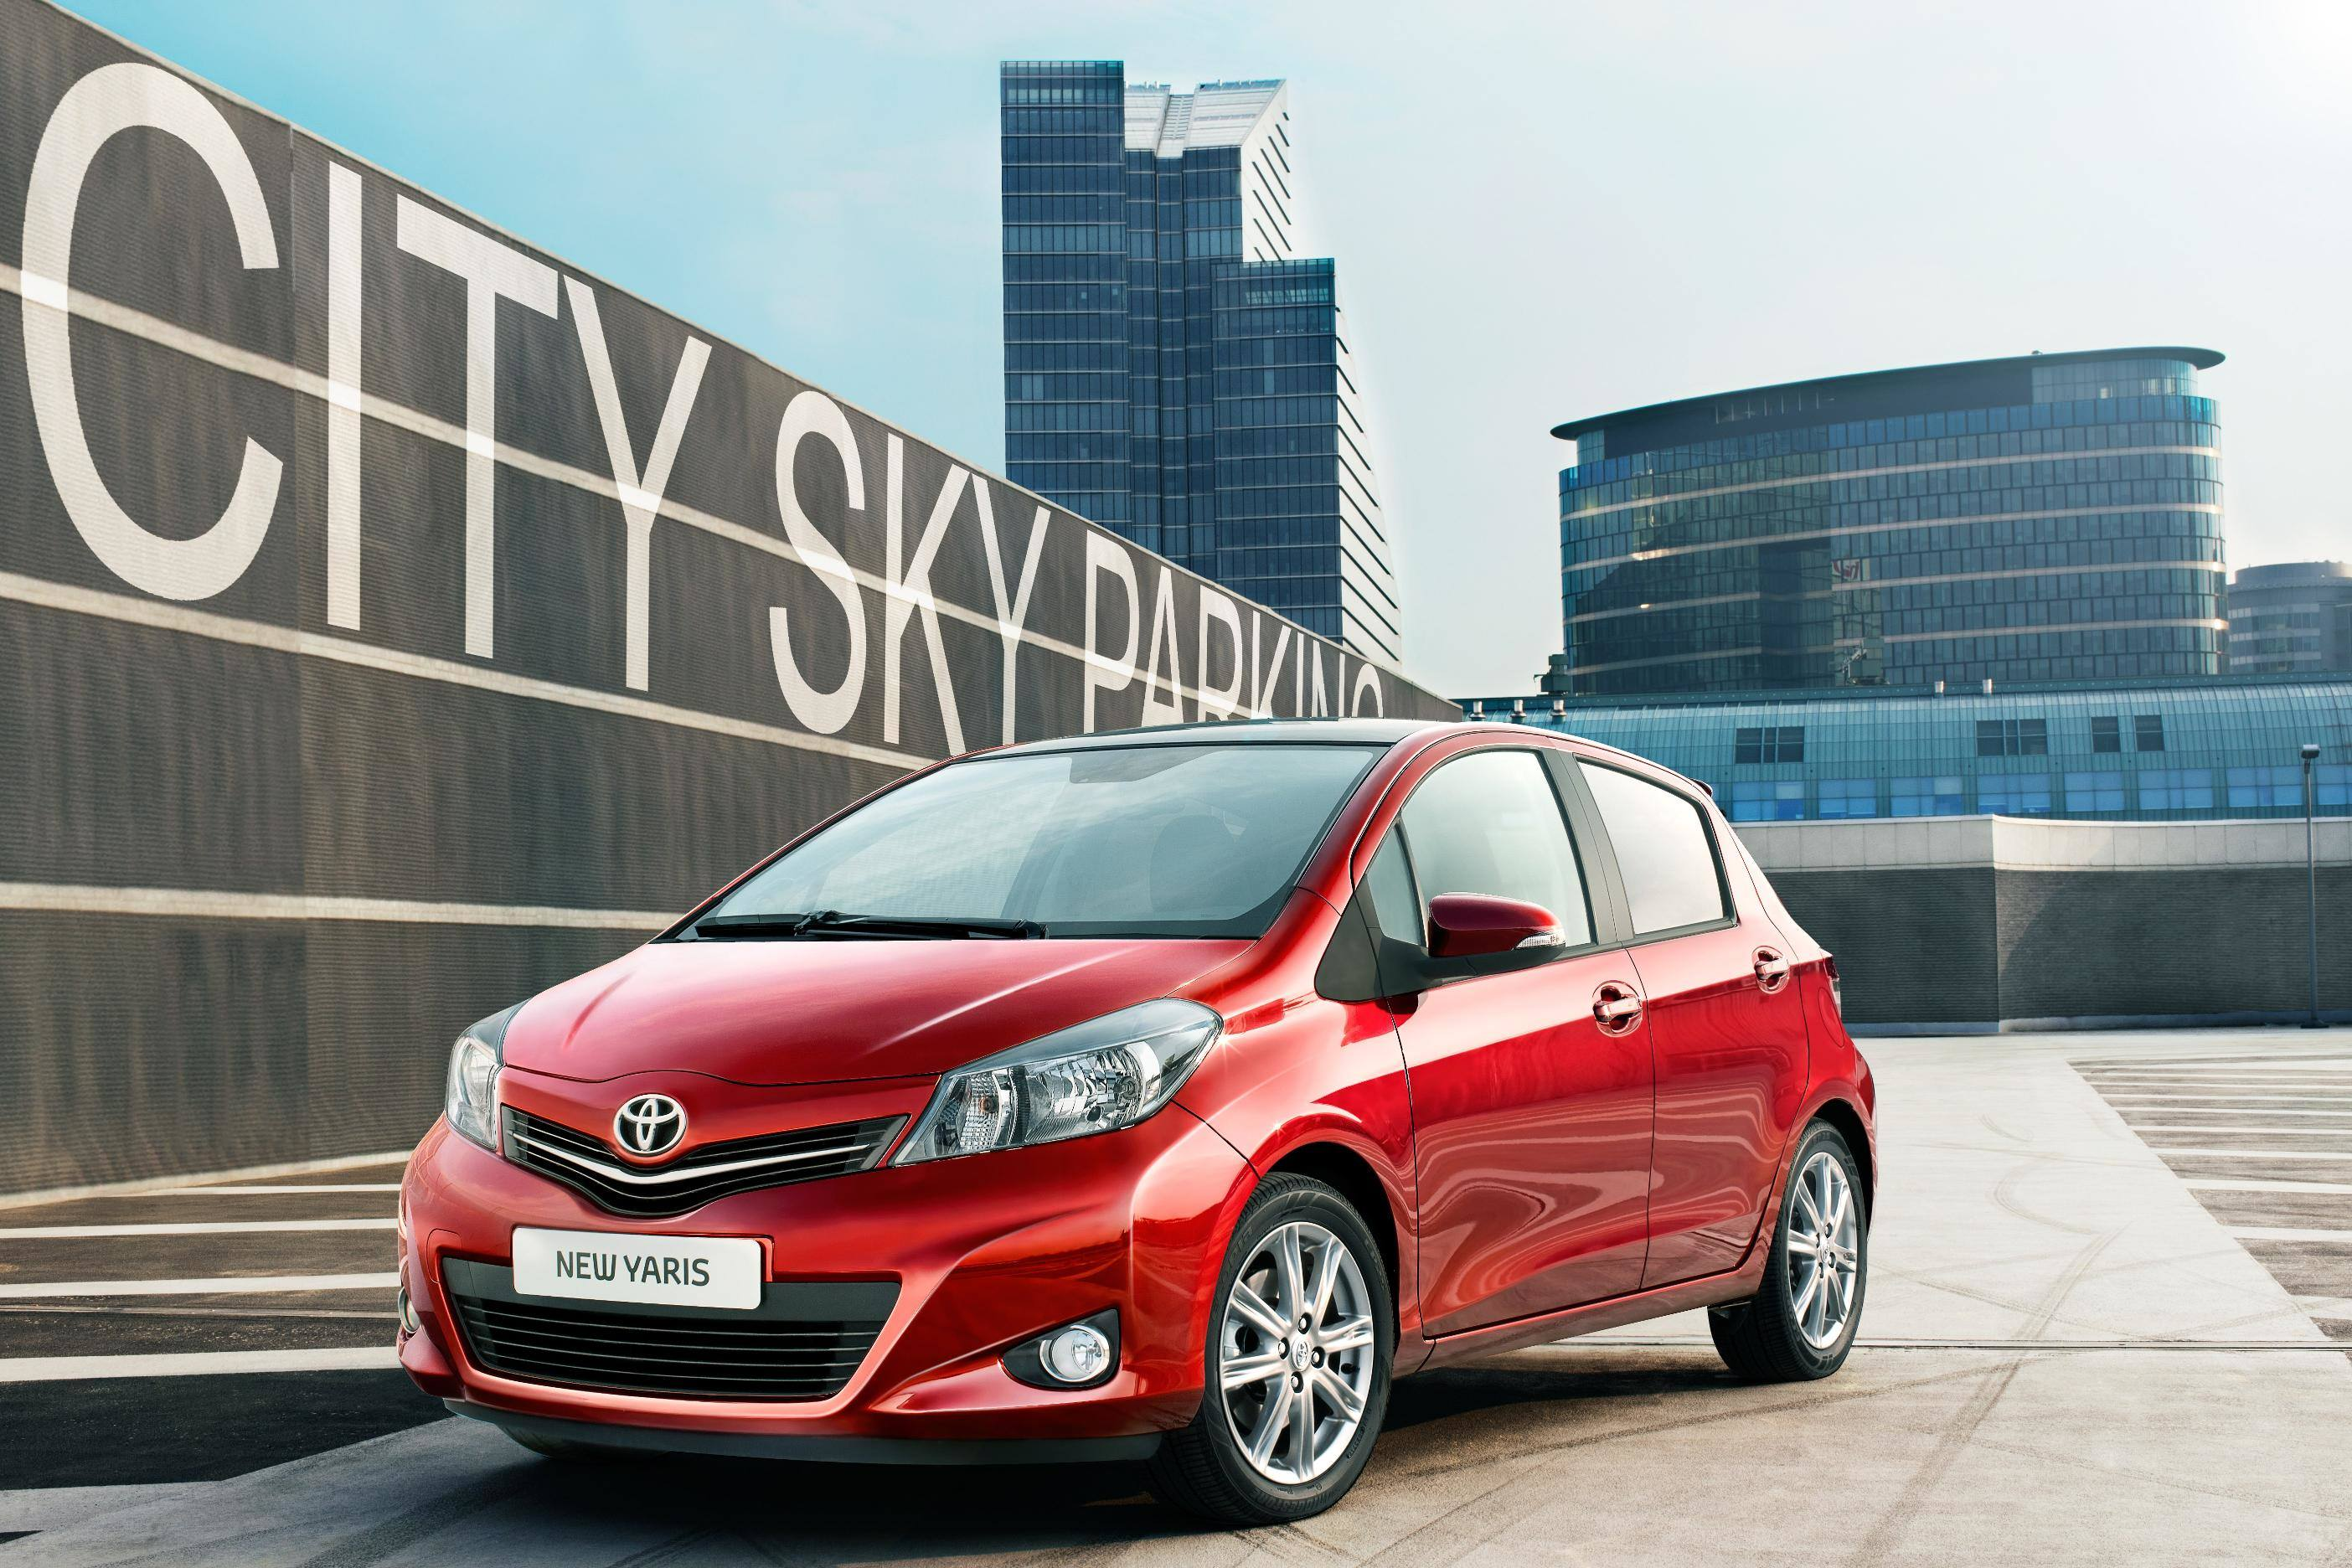 image of a red toyota yaris car exterior